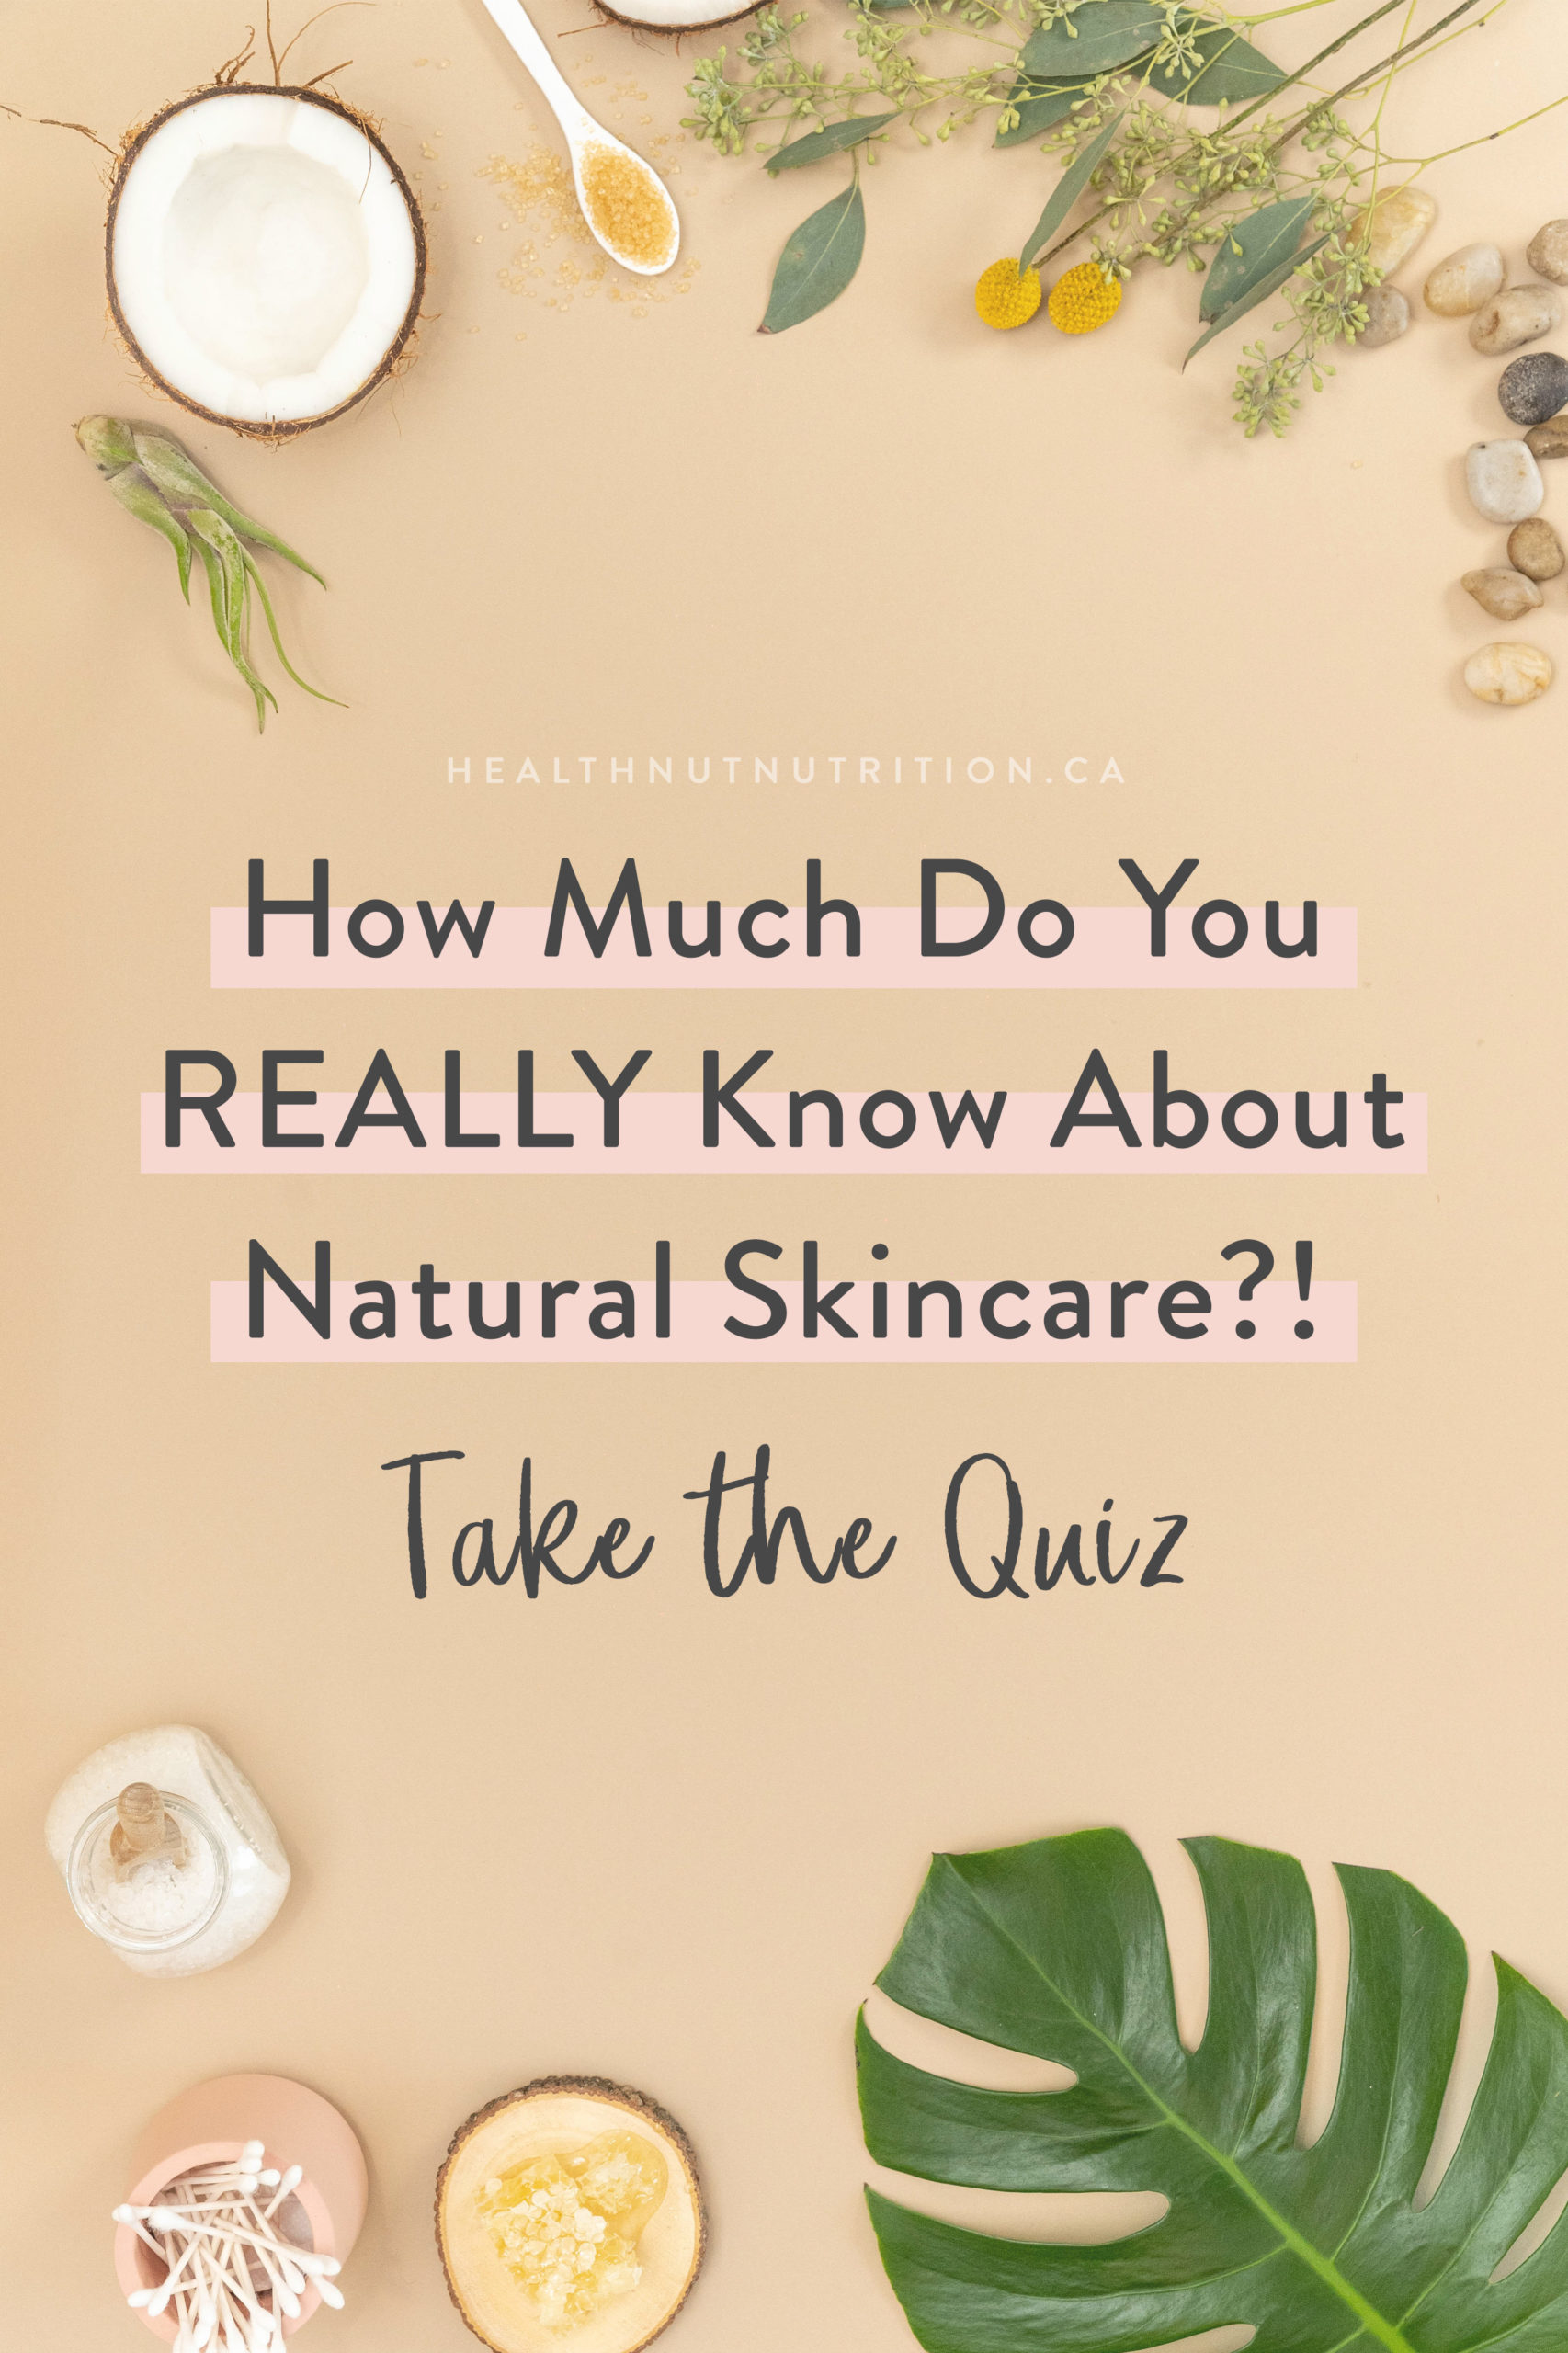 How much do you really know about natural skincare?